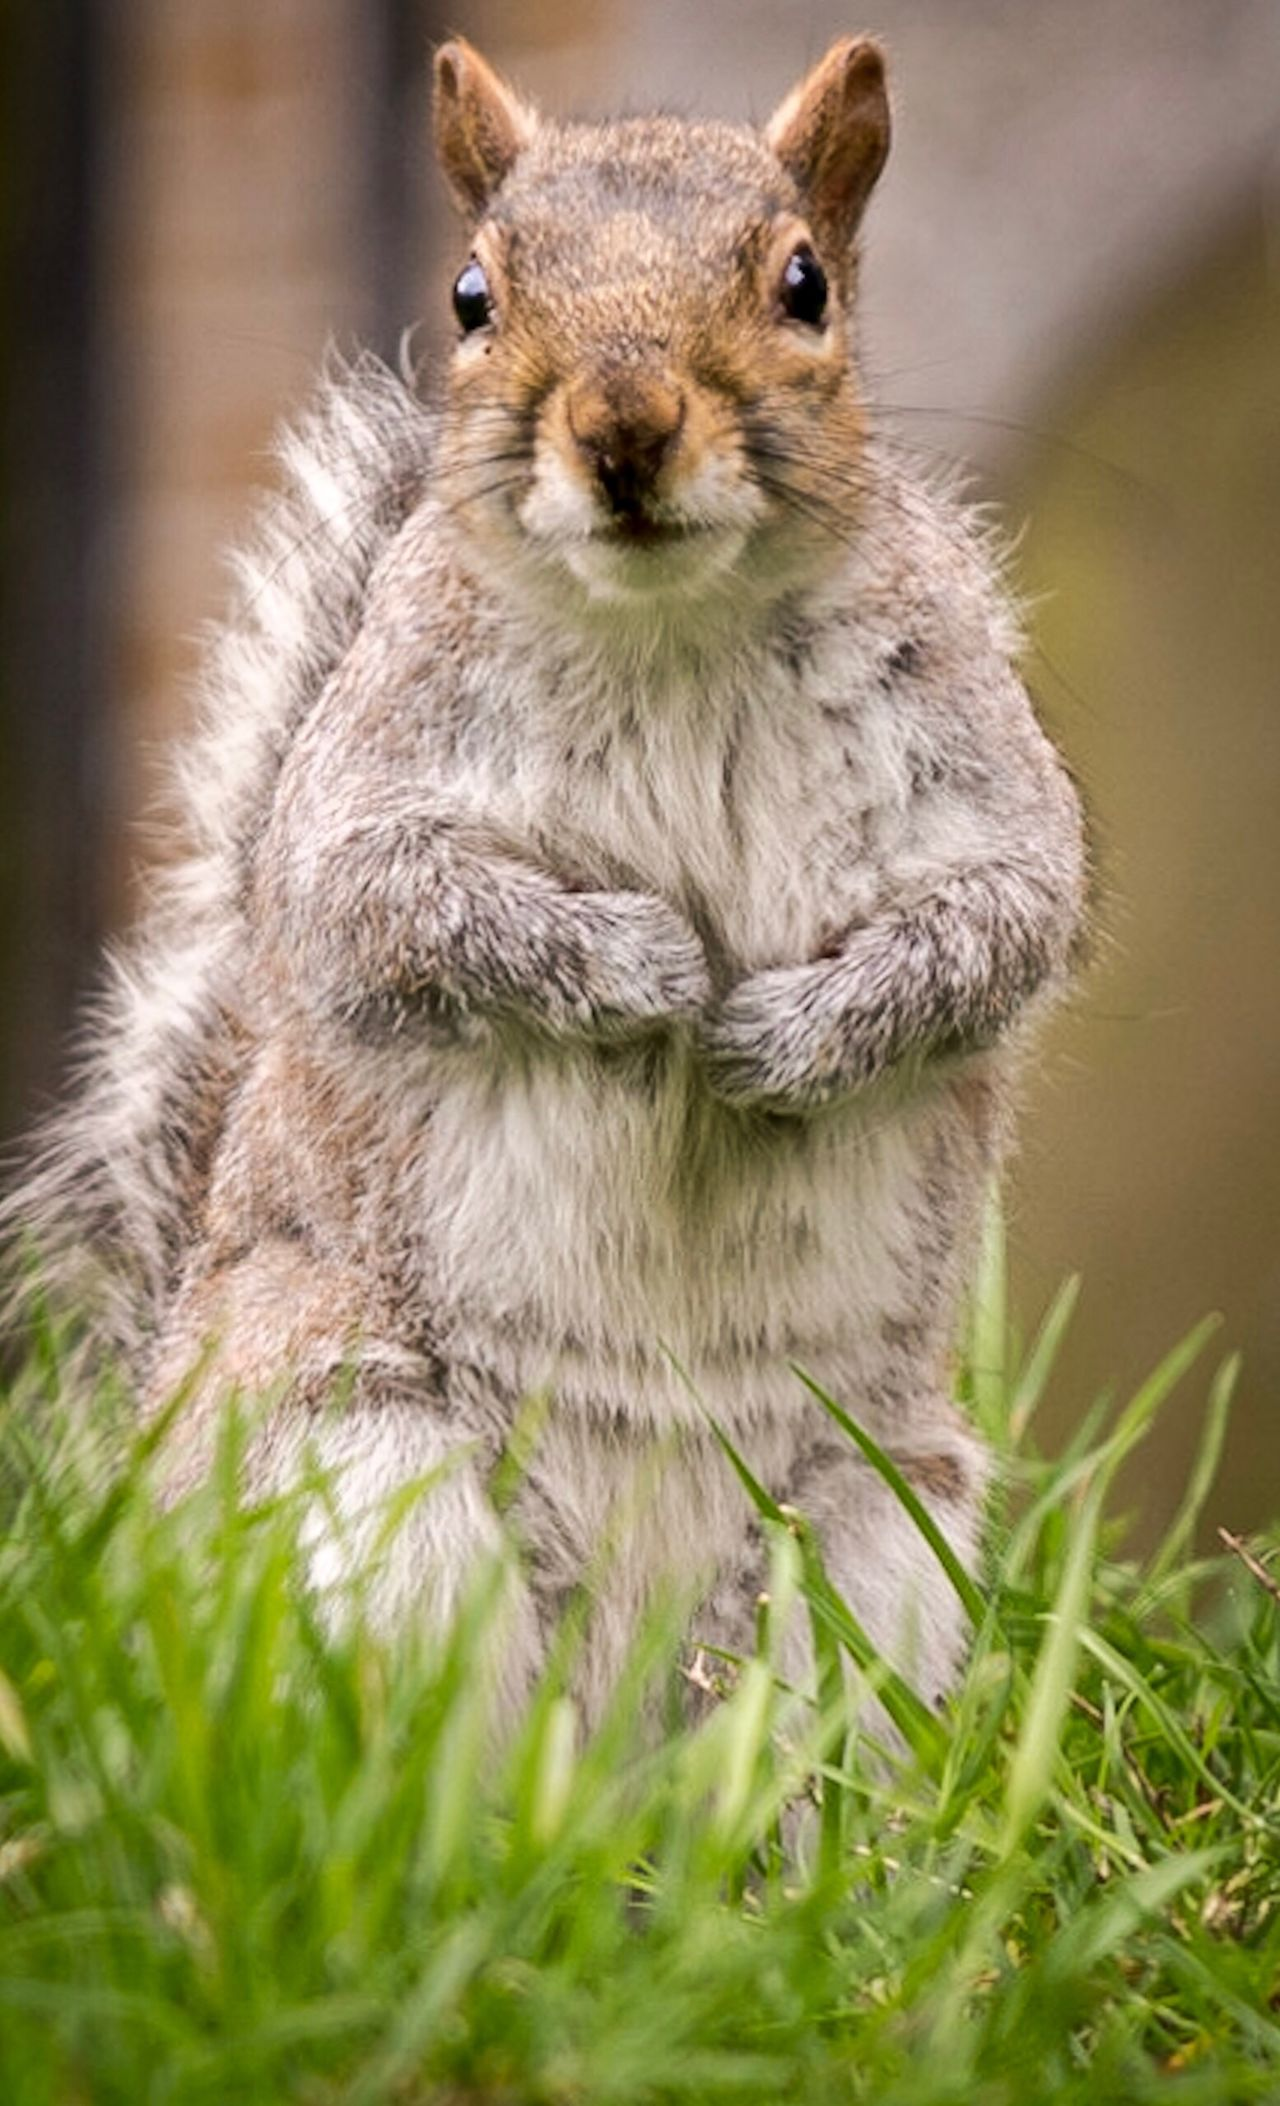 Cutie One Animal Nature No People Mammal Animal Wildlife Close-up Outdoors Animal Themes Day Grass Squirrels Squirrel Grass Beauty In Nature Nature